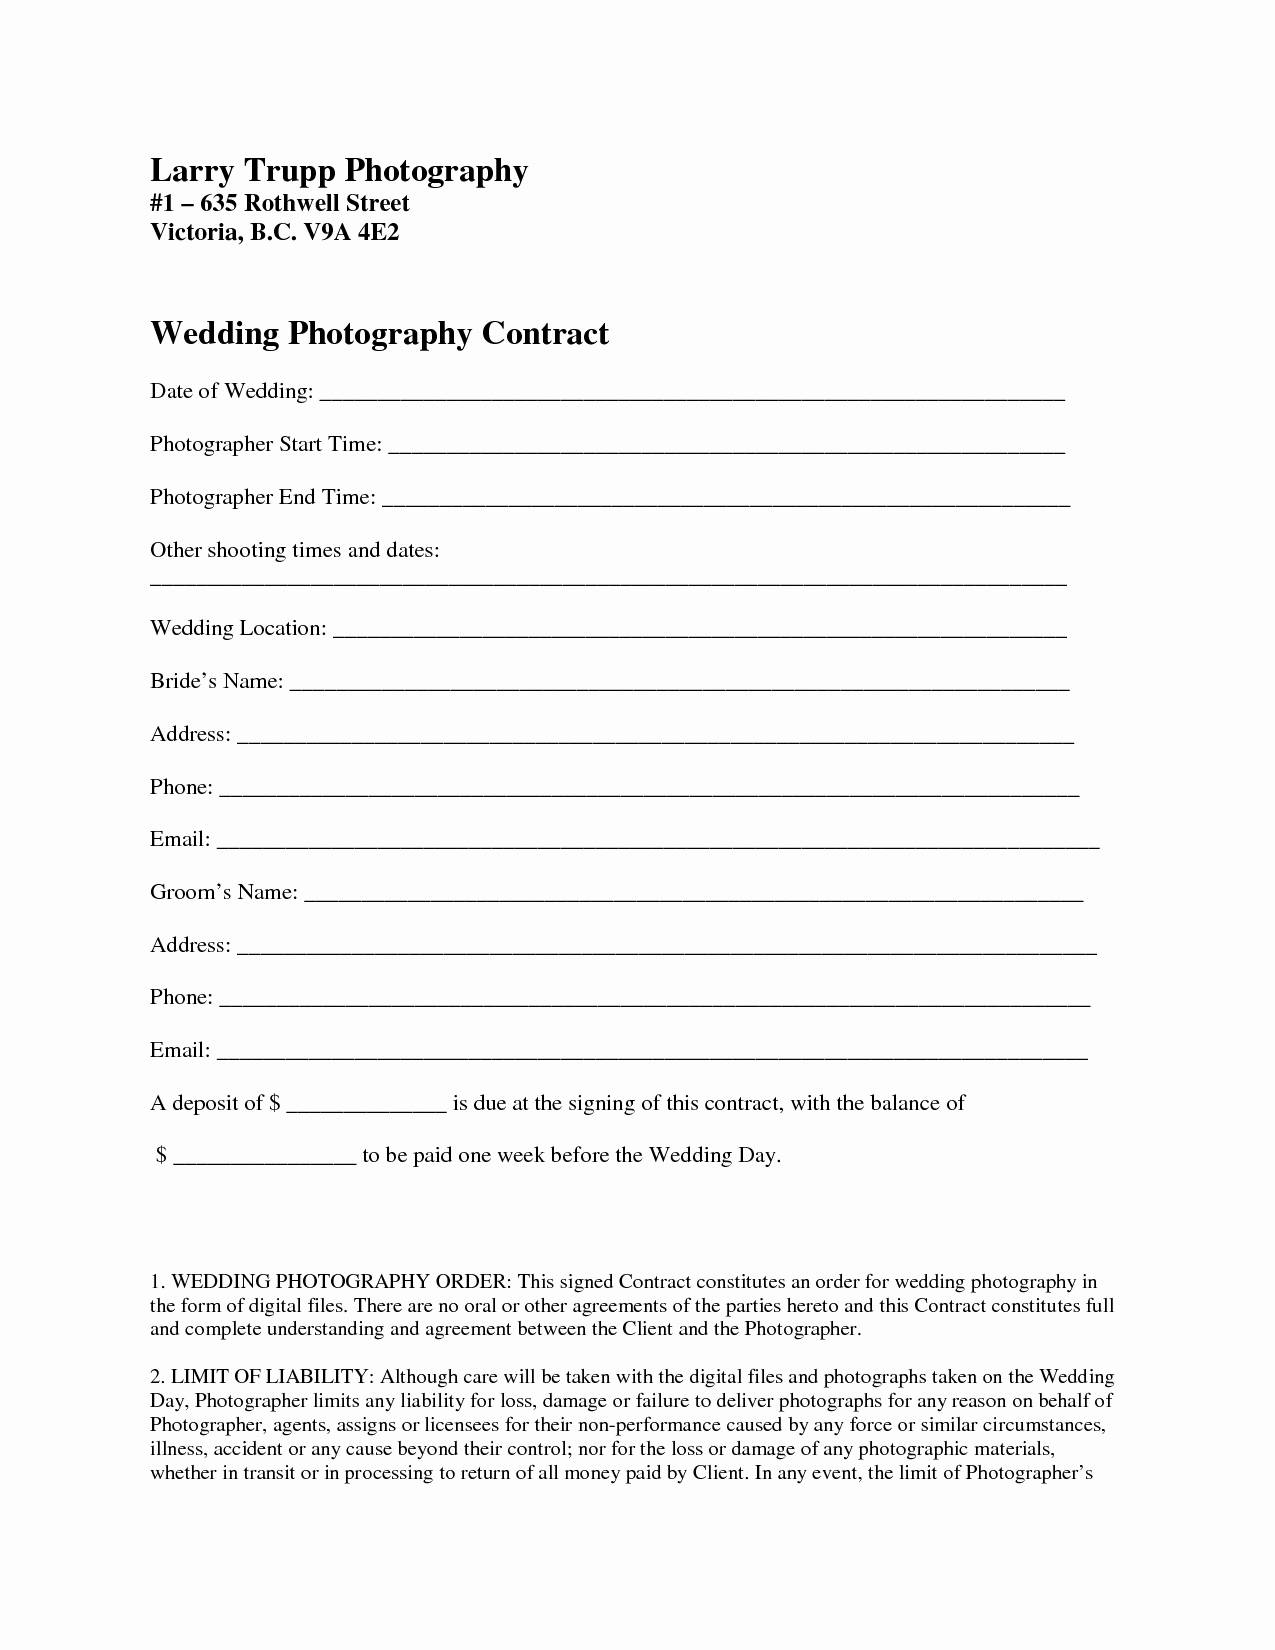 Wedding Photography Contract Template Word